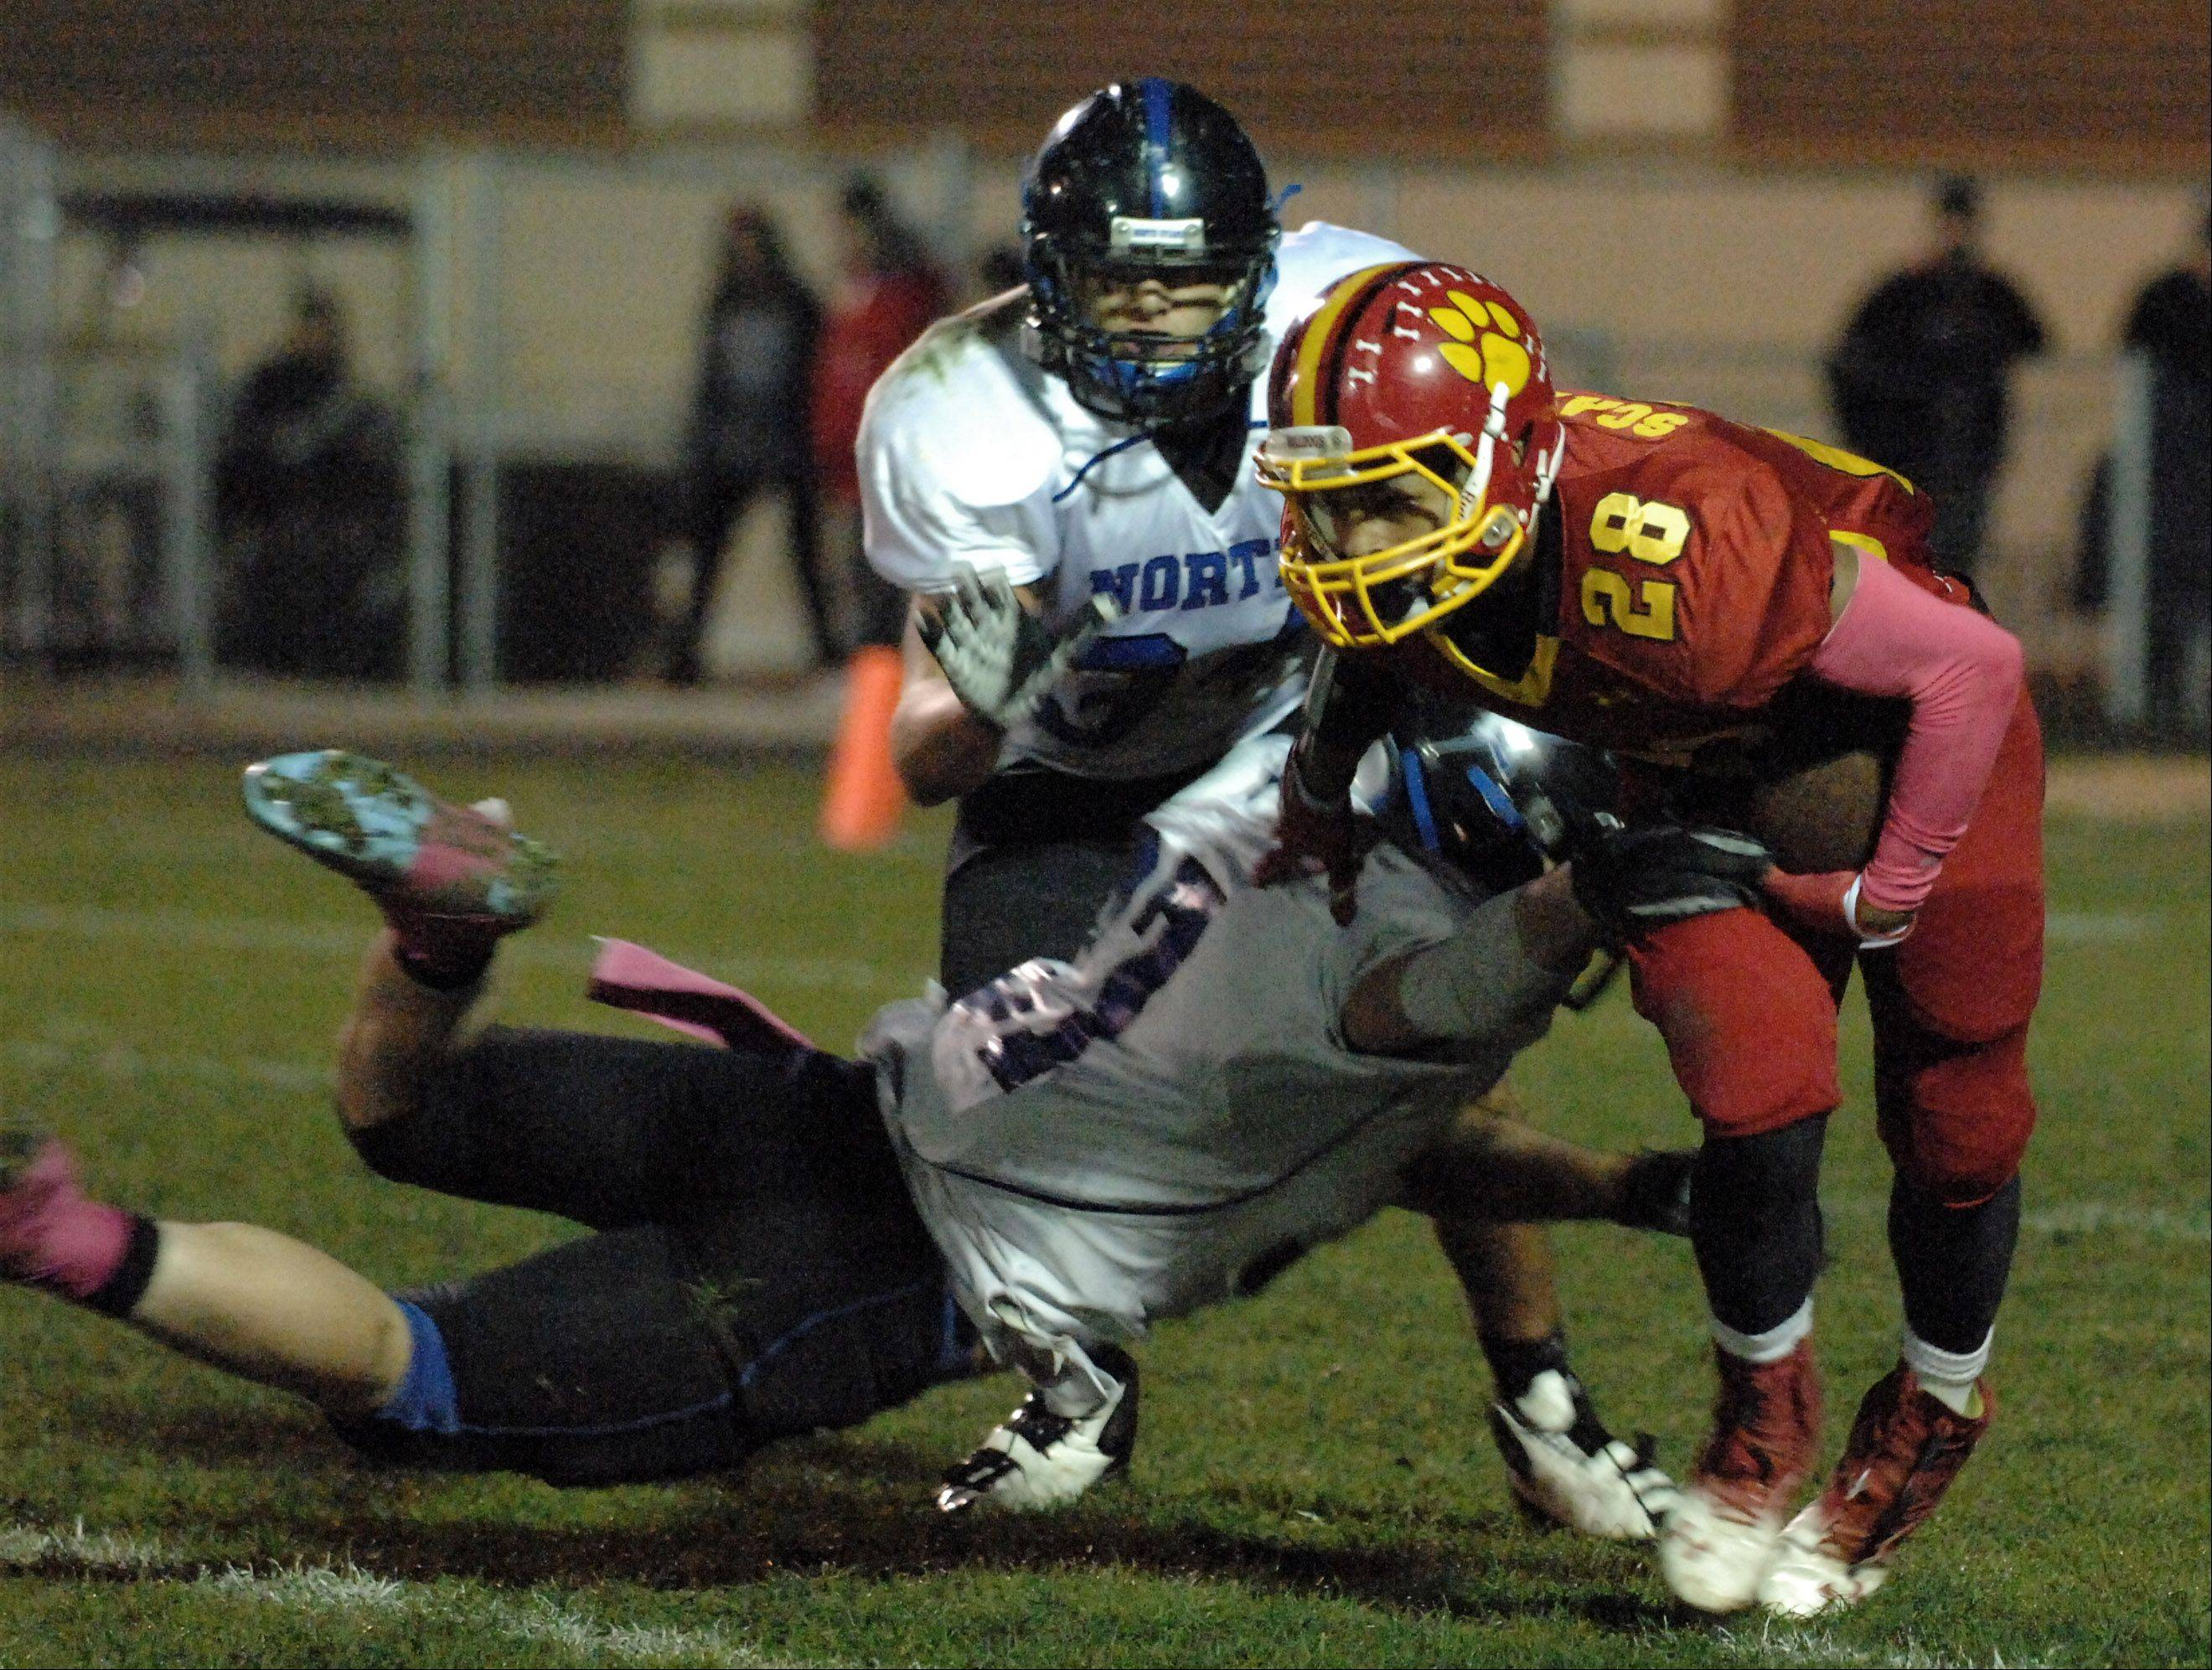 Week 7 - Images from the St. Charles North vs. Batavia football game Friday, October 5, 2012.